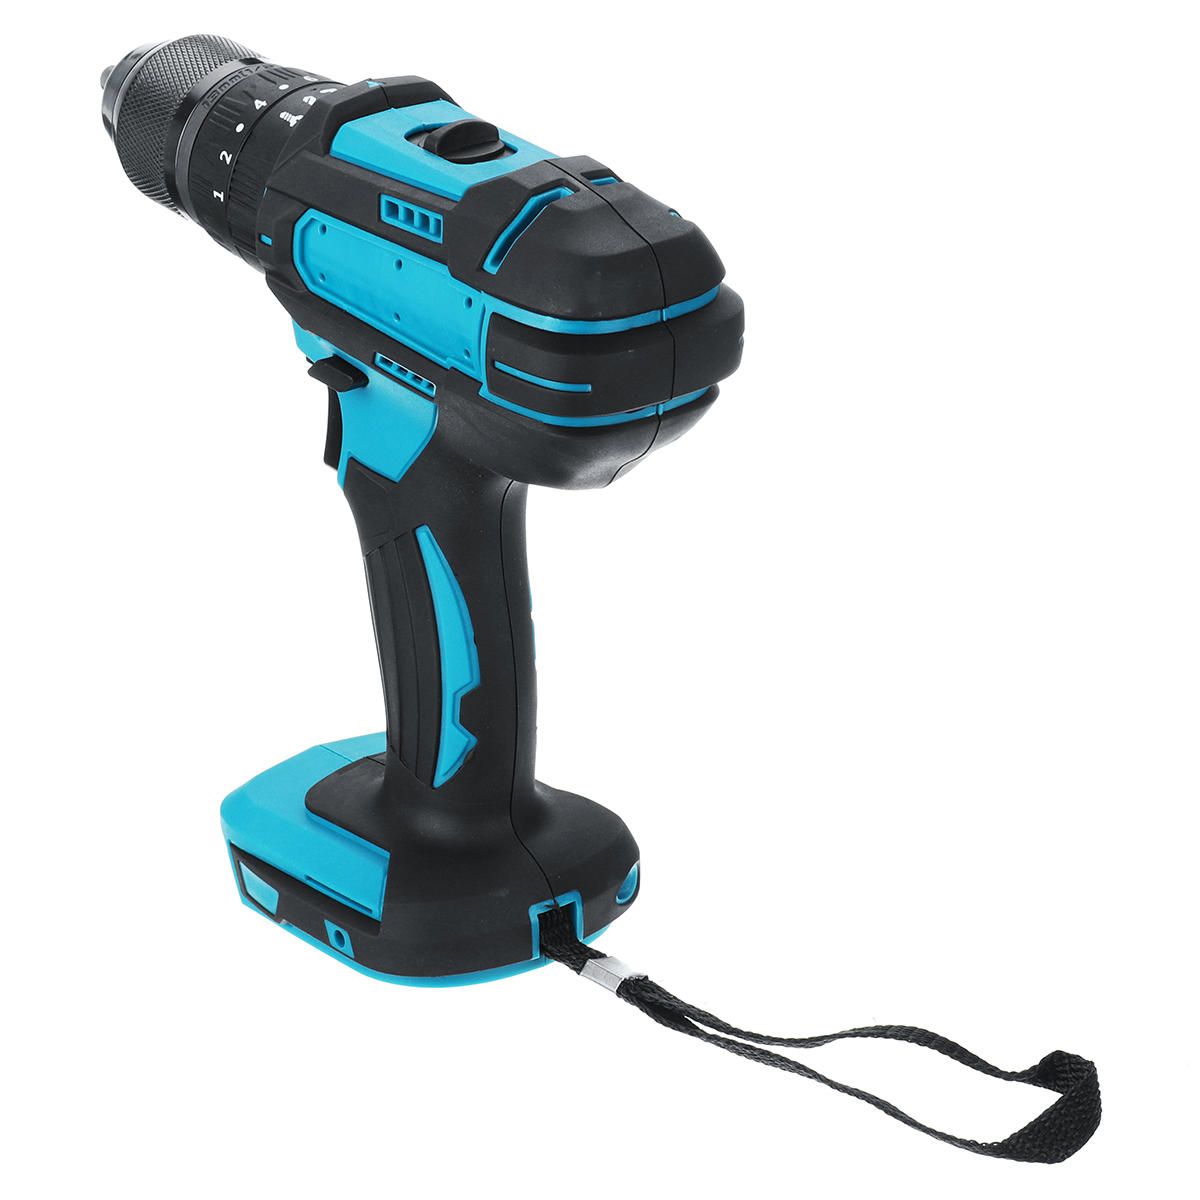 10mm Chuck Brushless Impact Drill 350N.m Cordless Electric Drill For Makita 18V Battery 4000RPM LED Light Power Drills - 4